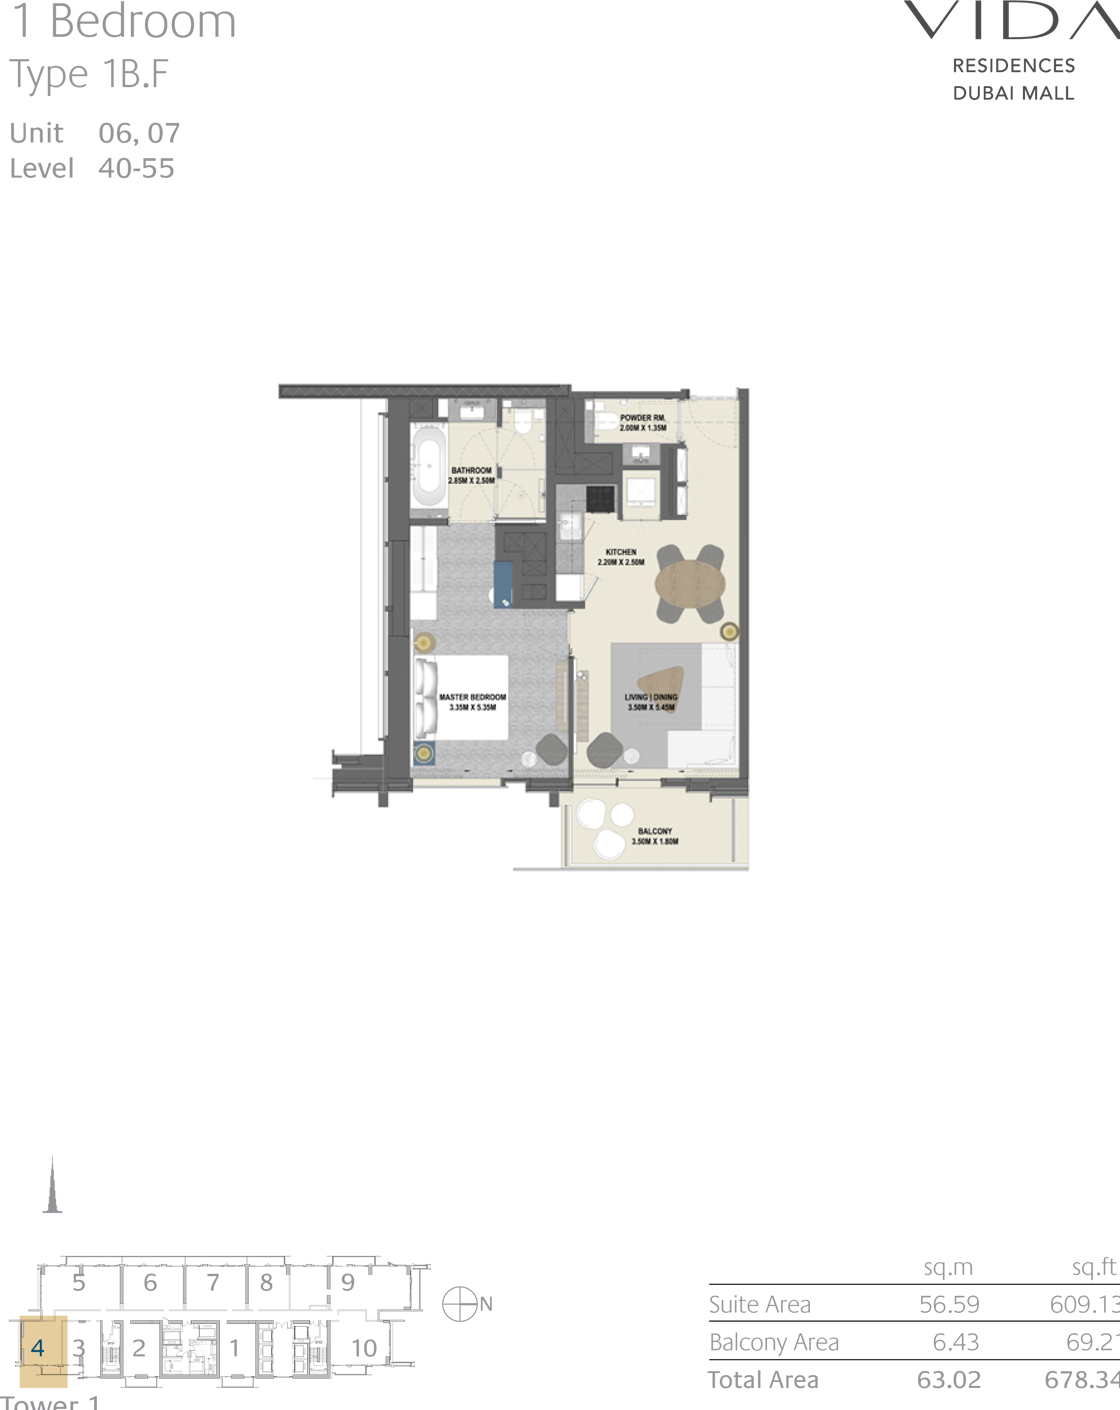 1 Bedroom Type 1B.F Unit 06,07 Level 40-55